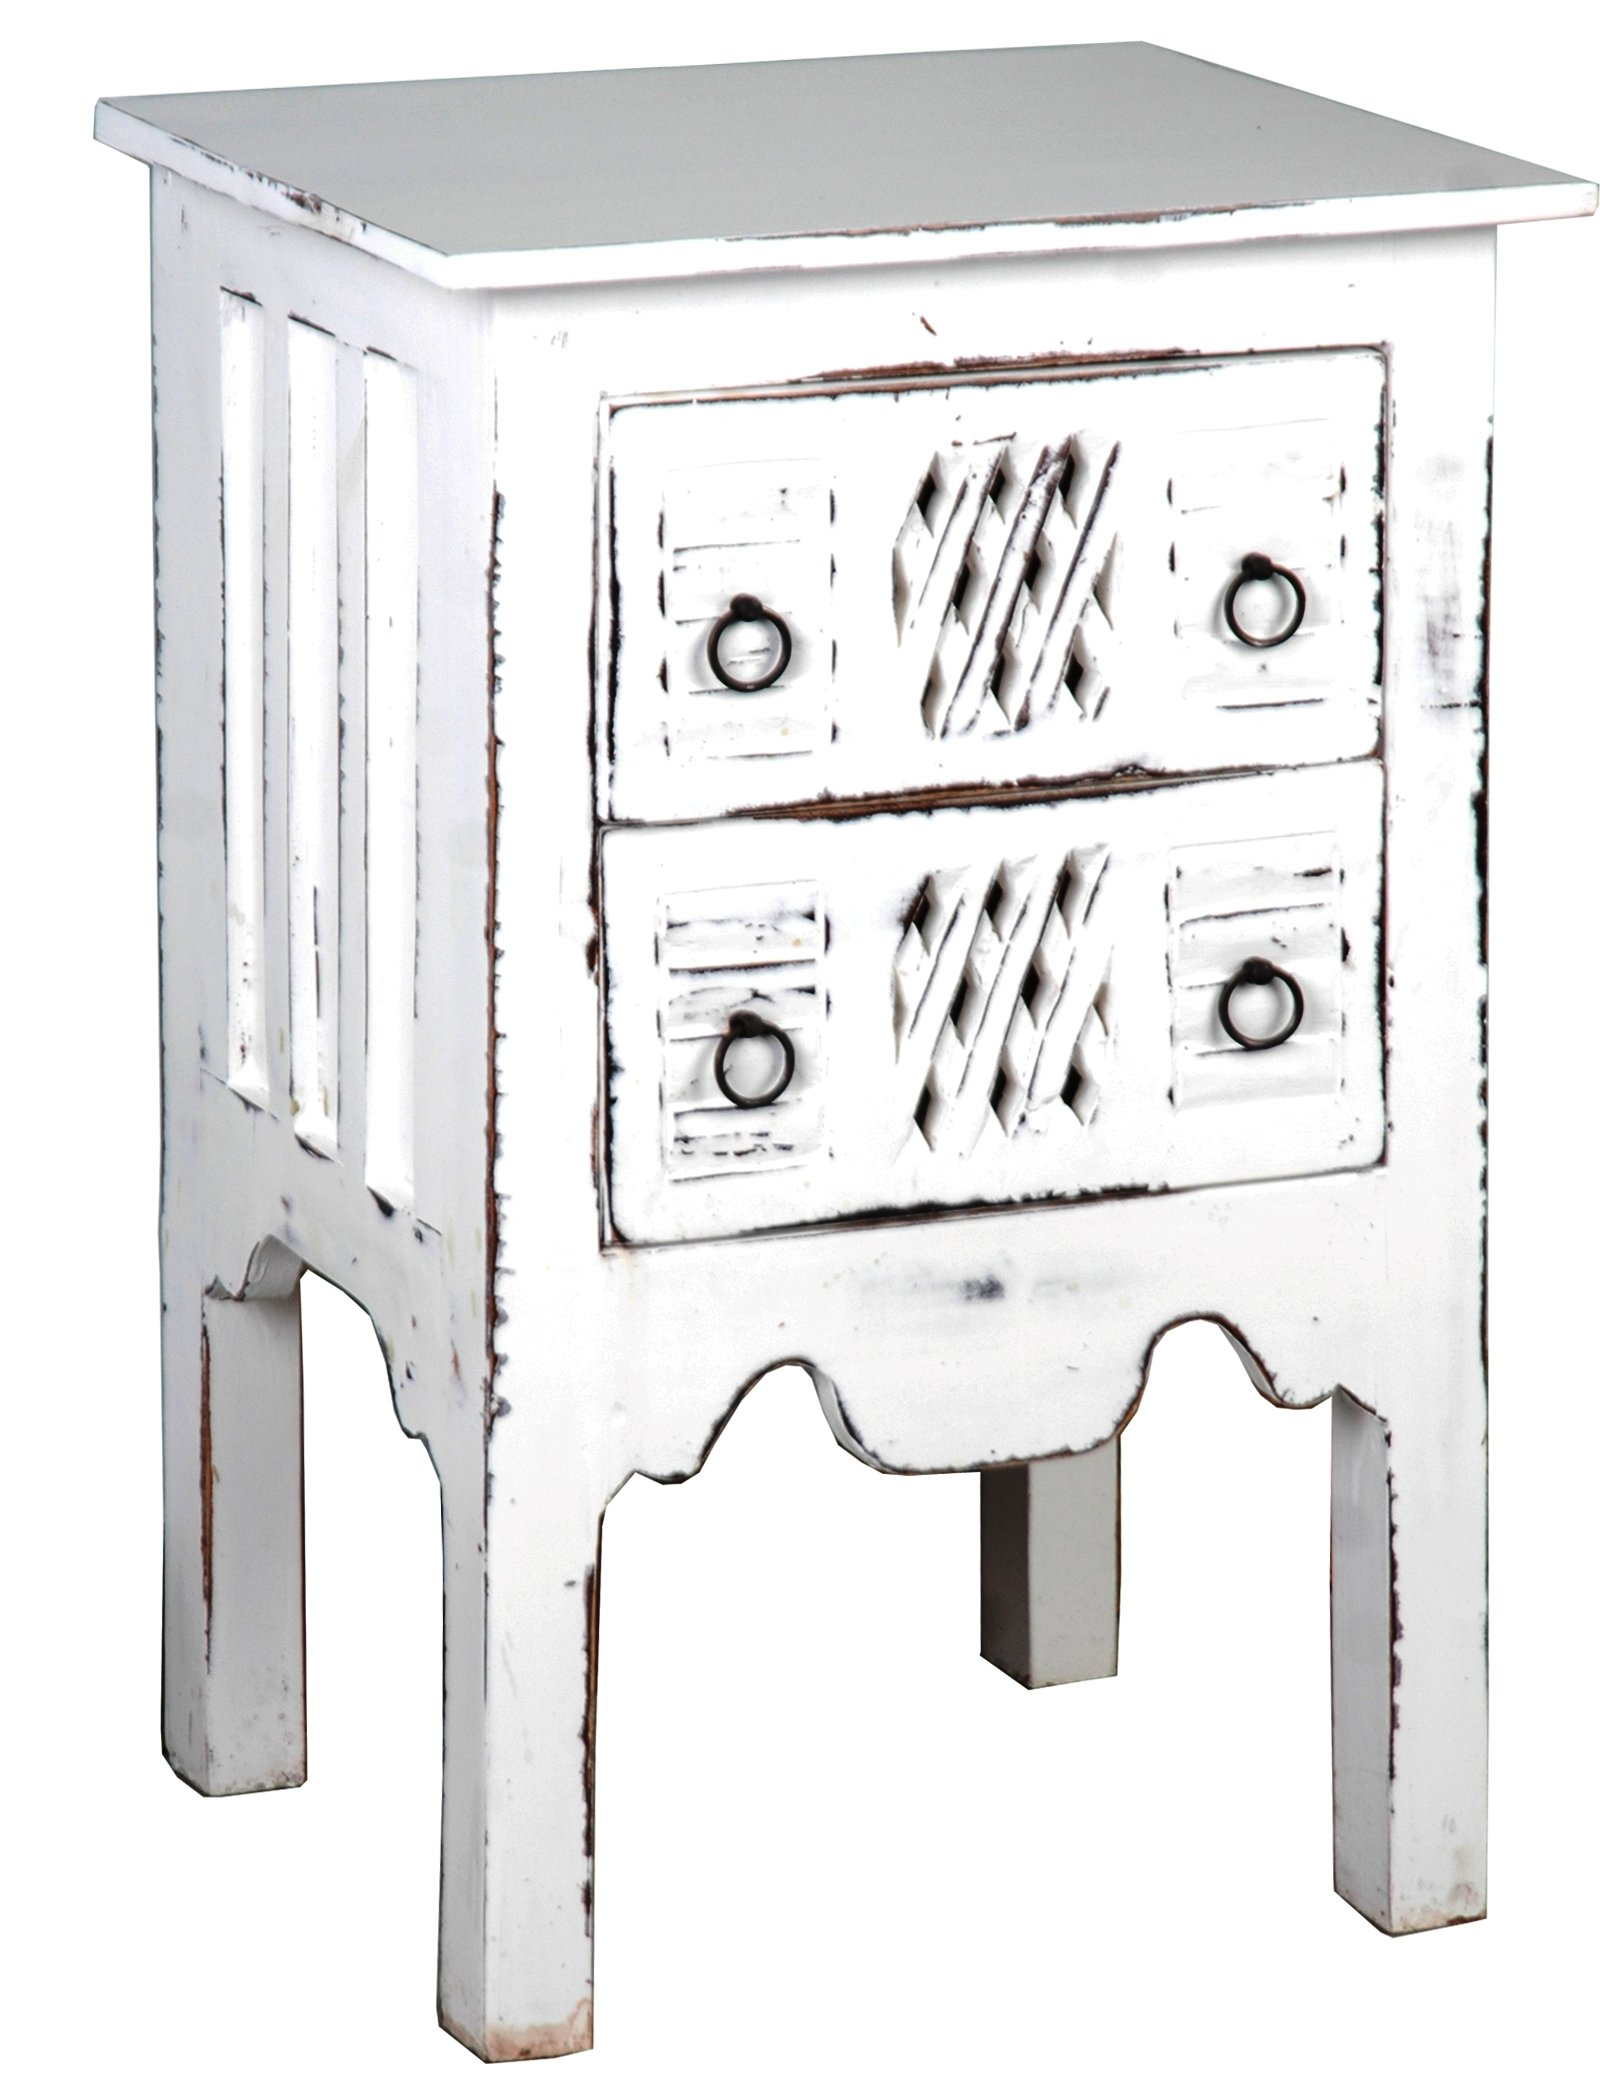 white accent table adelmo whitewashed end whitewash oriental lamps trellis legs ergonomic furniture and wood bedside acrylic coffee pier one pillows clearance washer dryer space